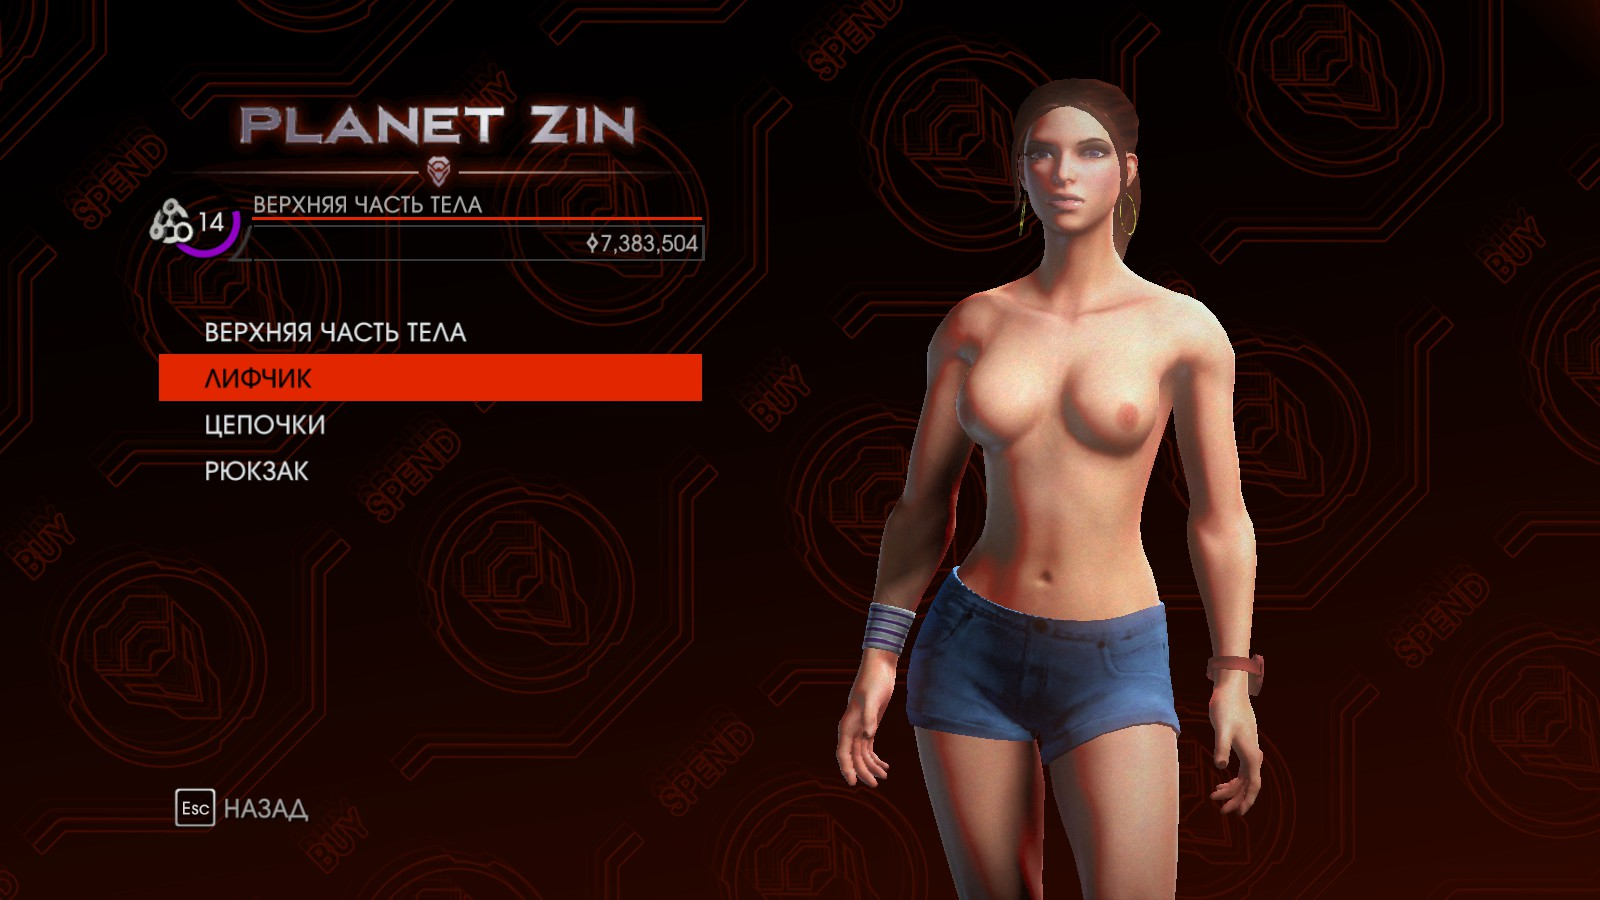 Saints row iv nude hair porno films